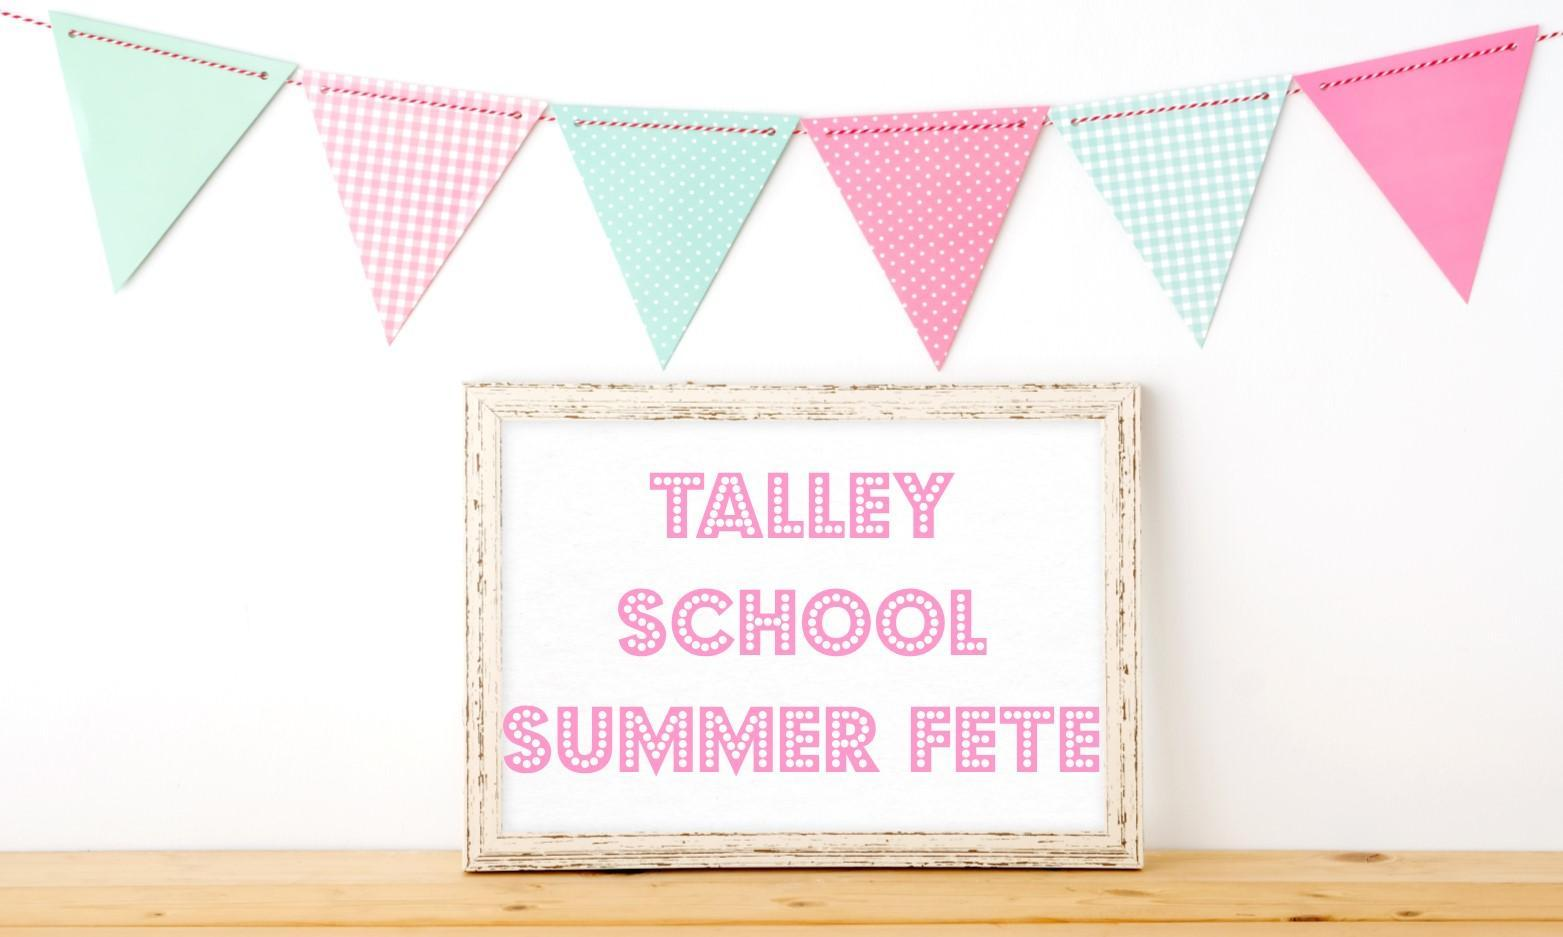 Talley School Summer Fun Day